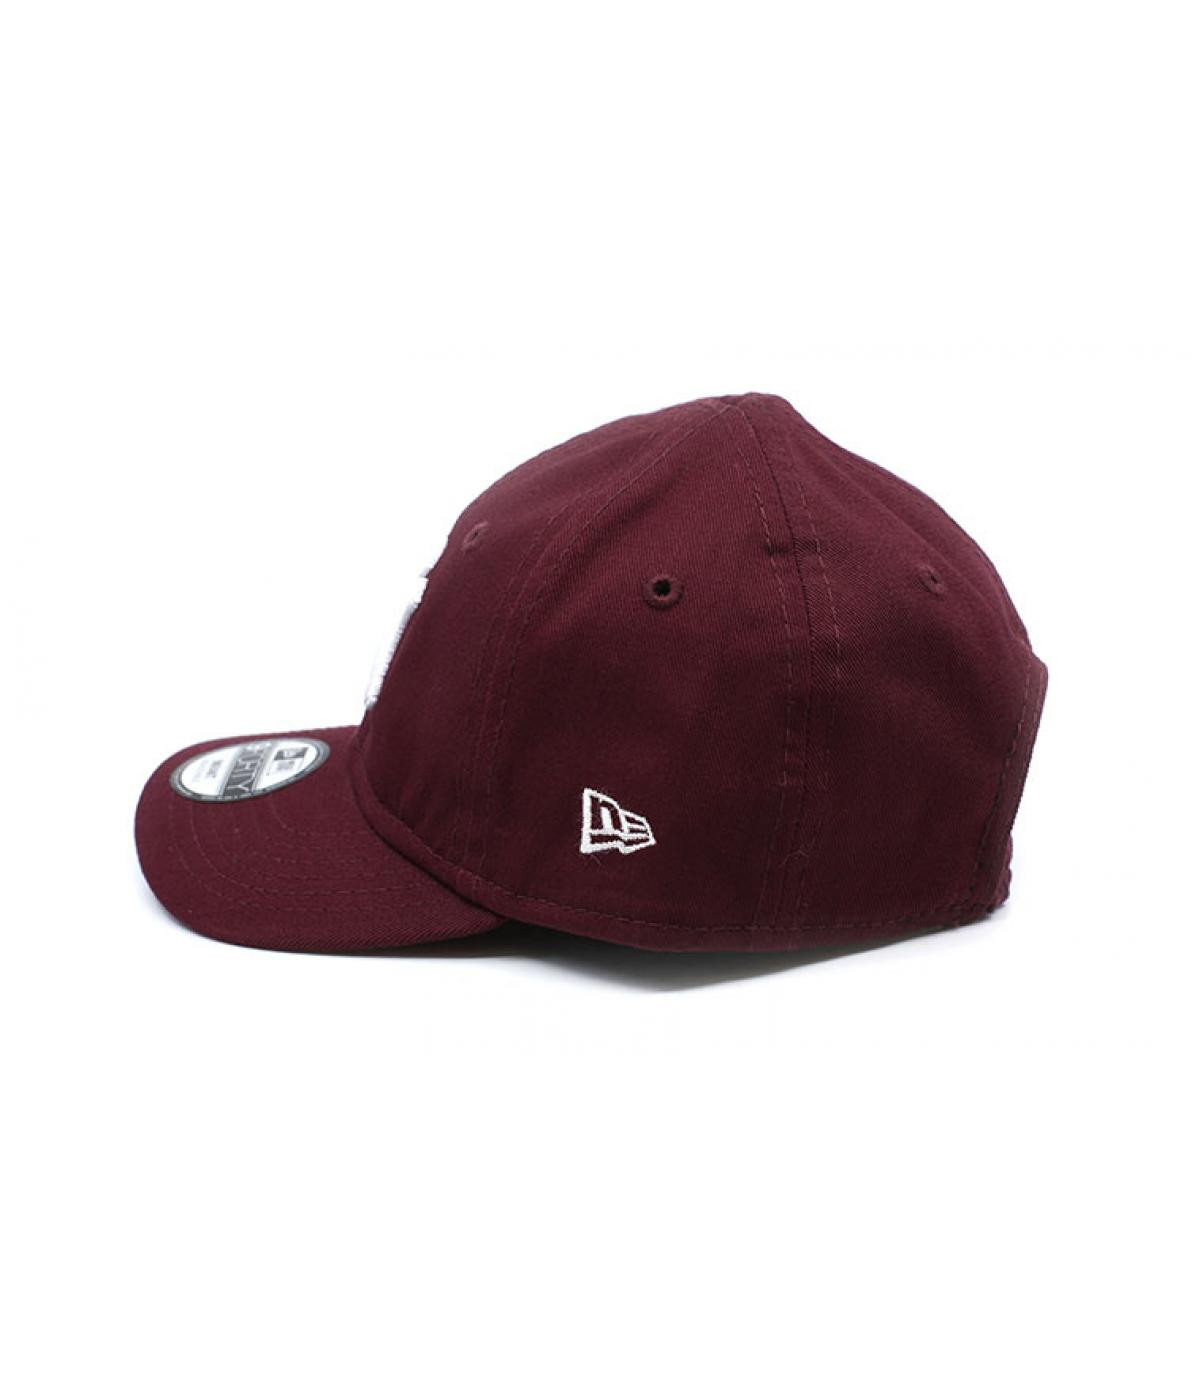 Details Baby League Ess NY 9Forty maroon - afbeeling 4